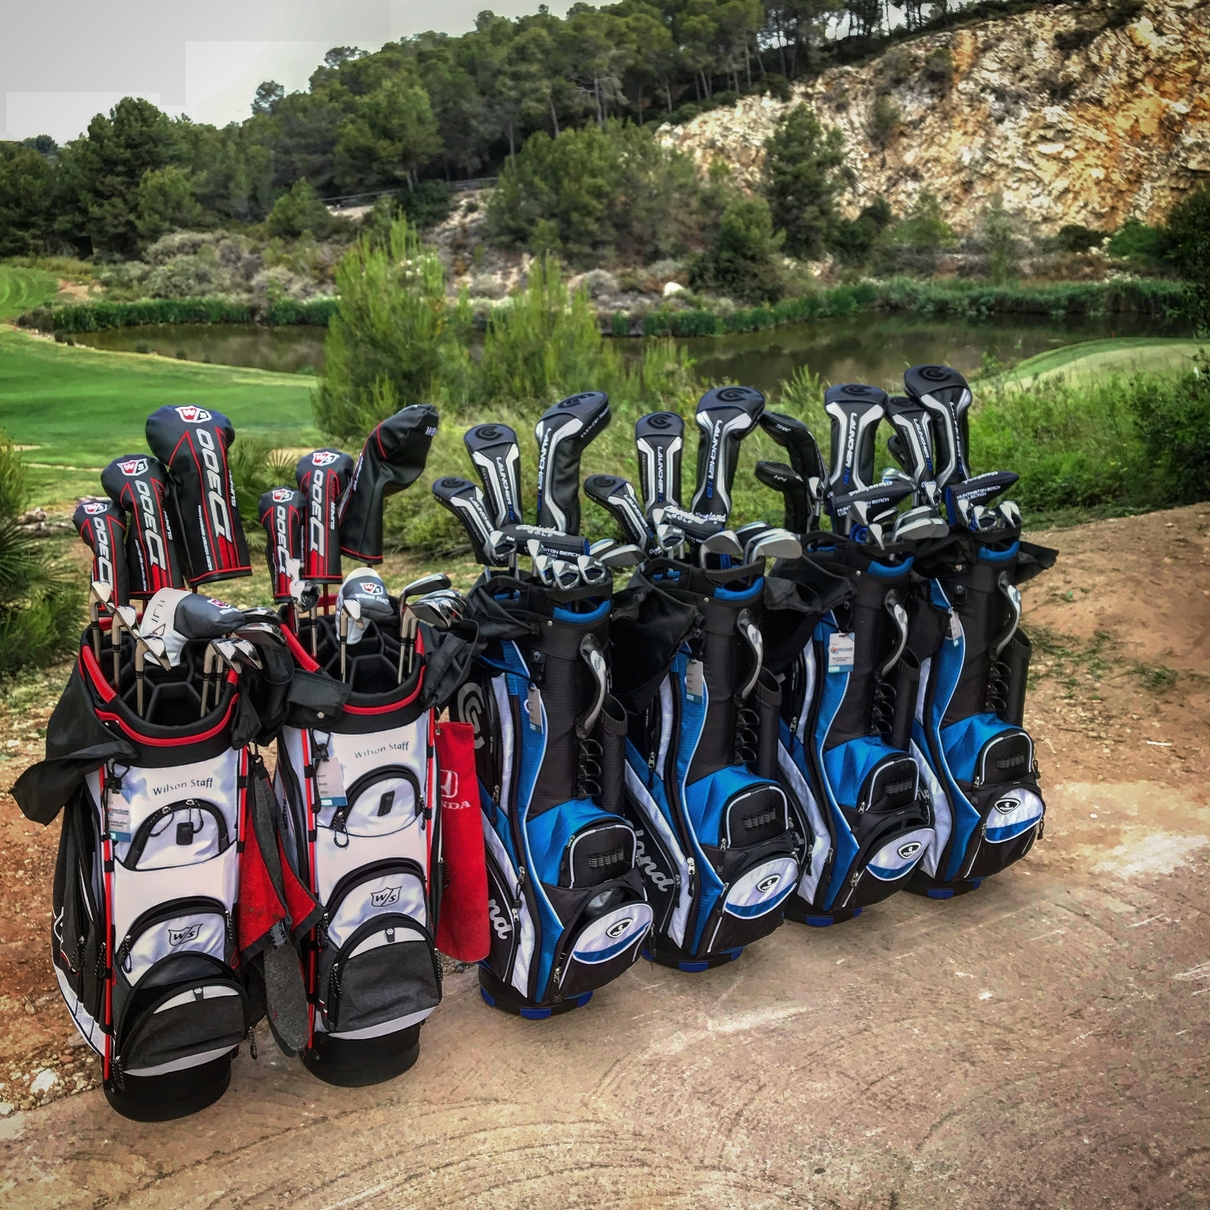 <p>Golf sets booked include cover insurance for broken clubs and free pick up & delivery service (check shipping conditions)</p>